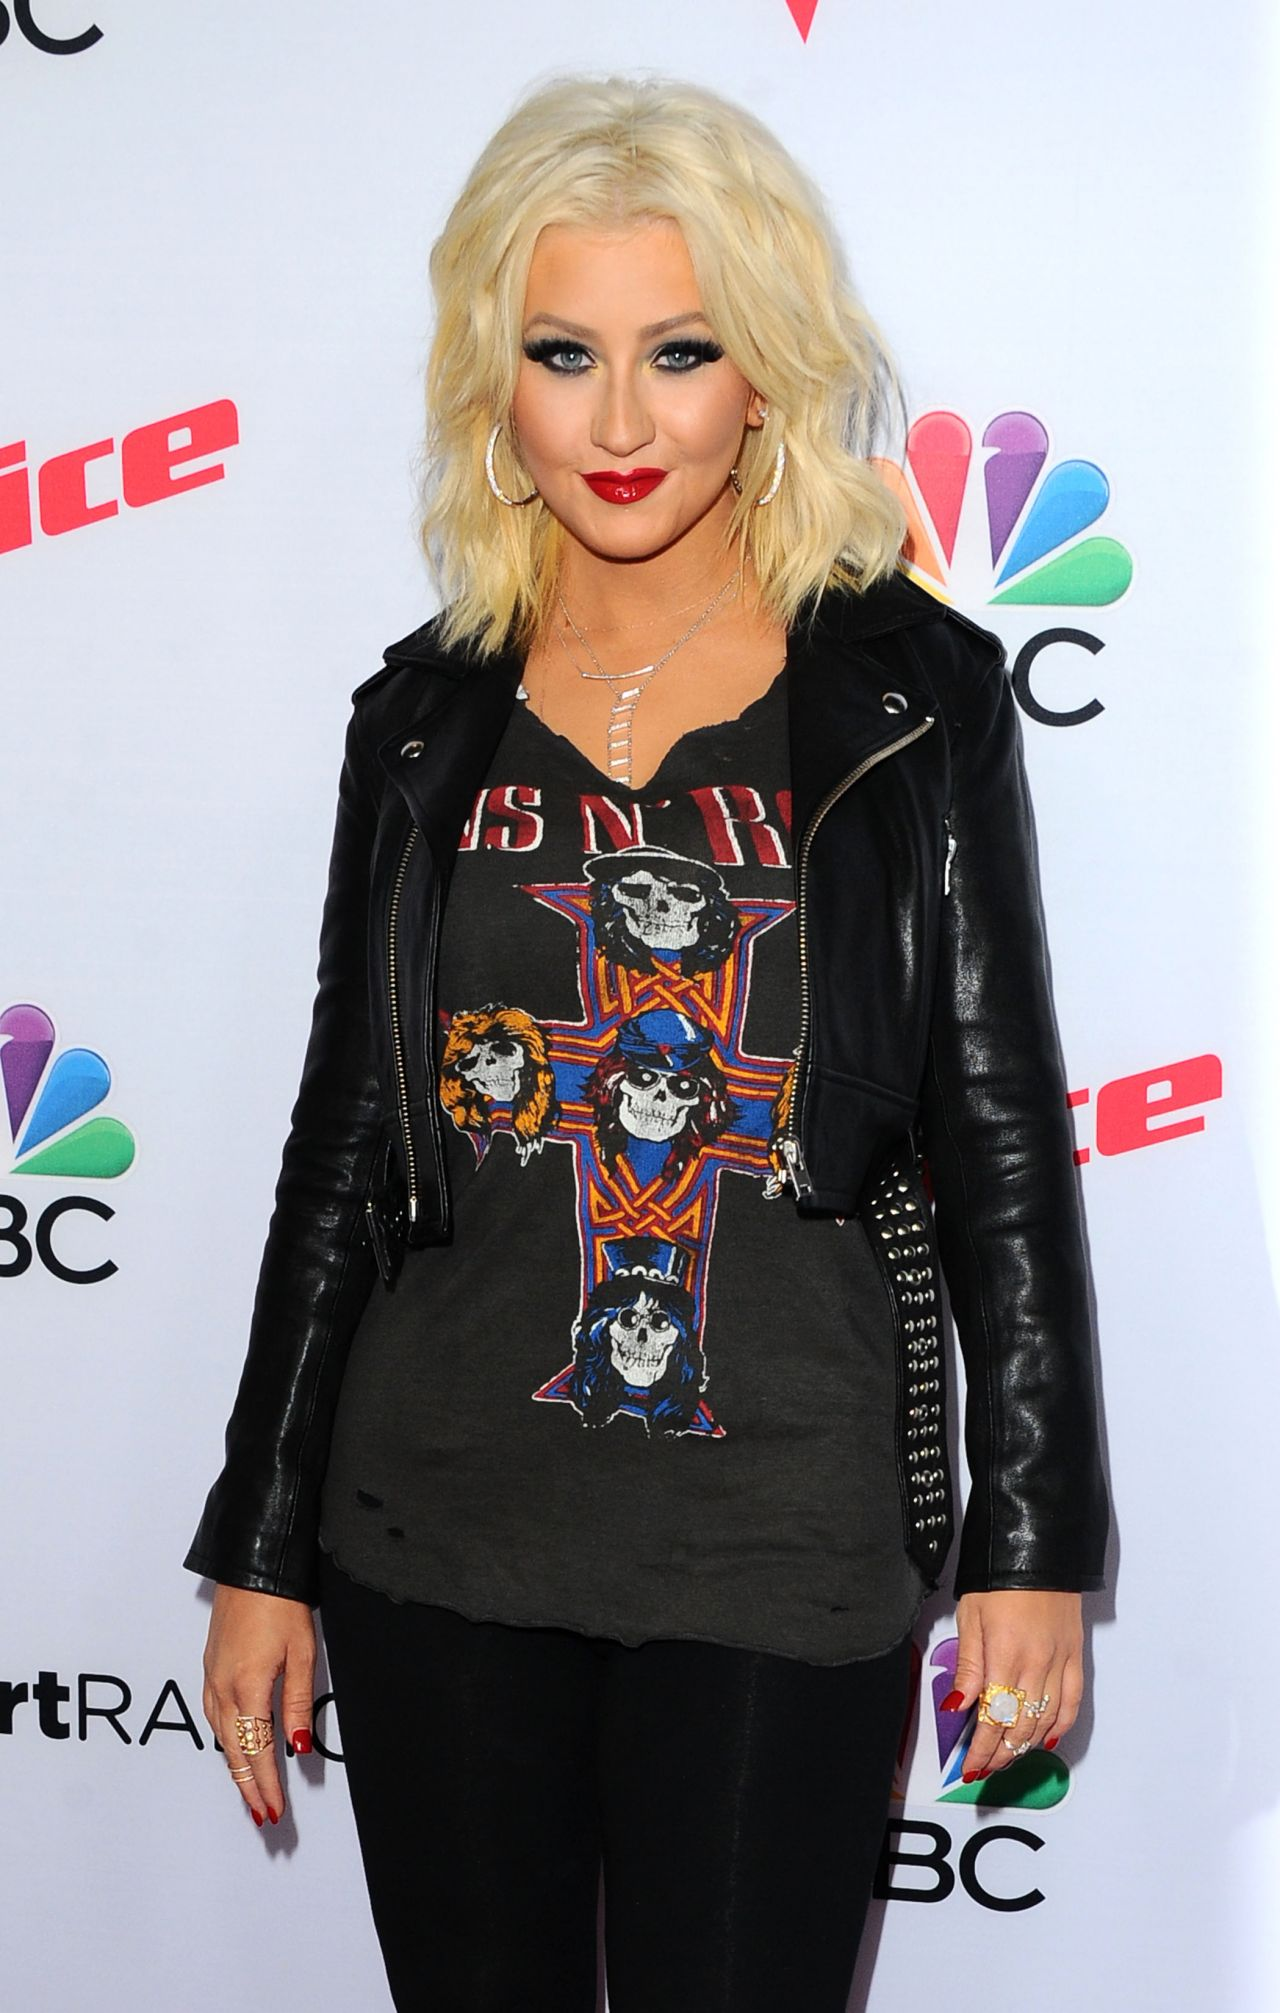 Christina Aguilera  Arrives for NBCs The Voice Season 8 Red Carpet Event in West Hollywood